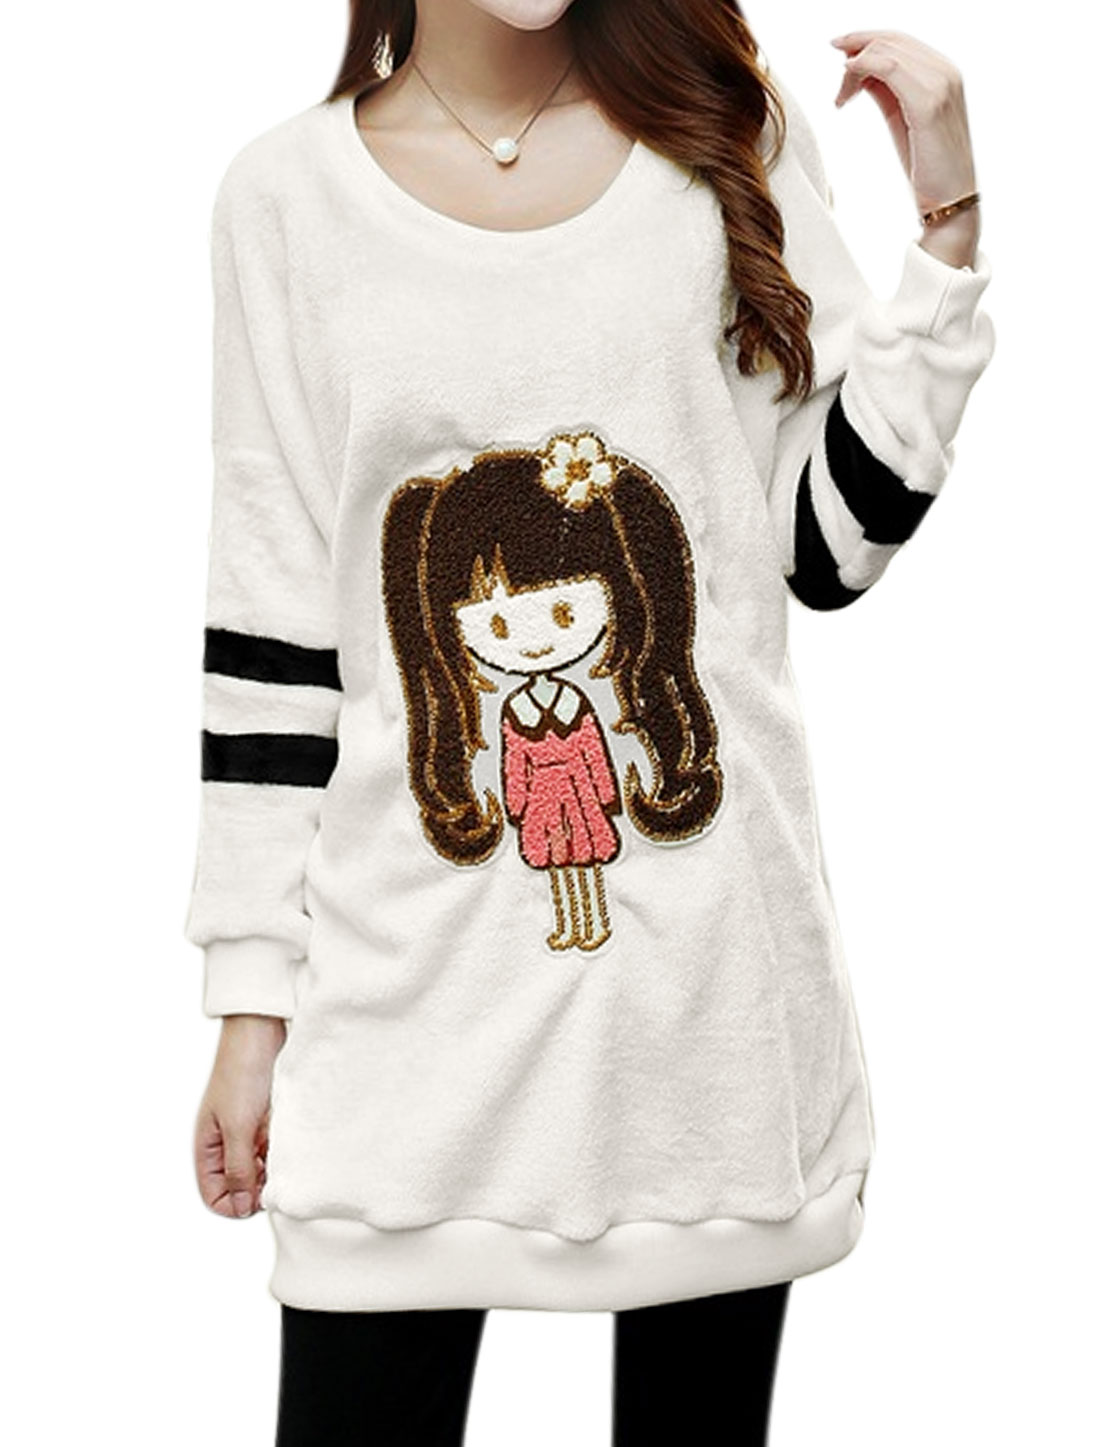 Women Batwing Sleeves Cartoon Applique Plush Tunic Sweatshirt White XS